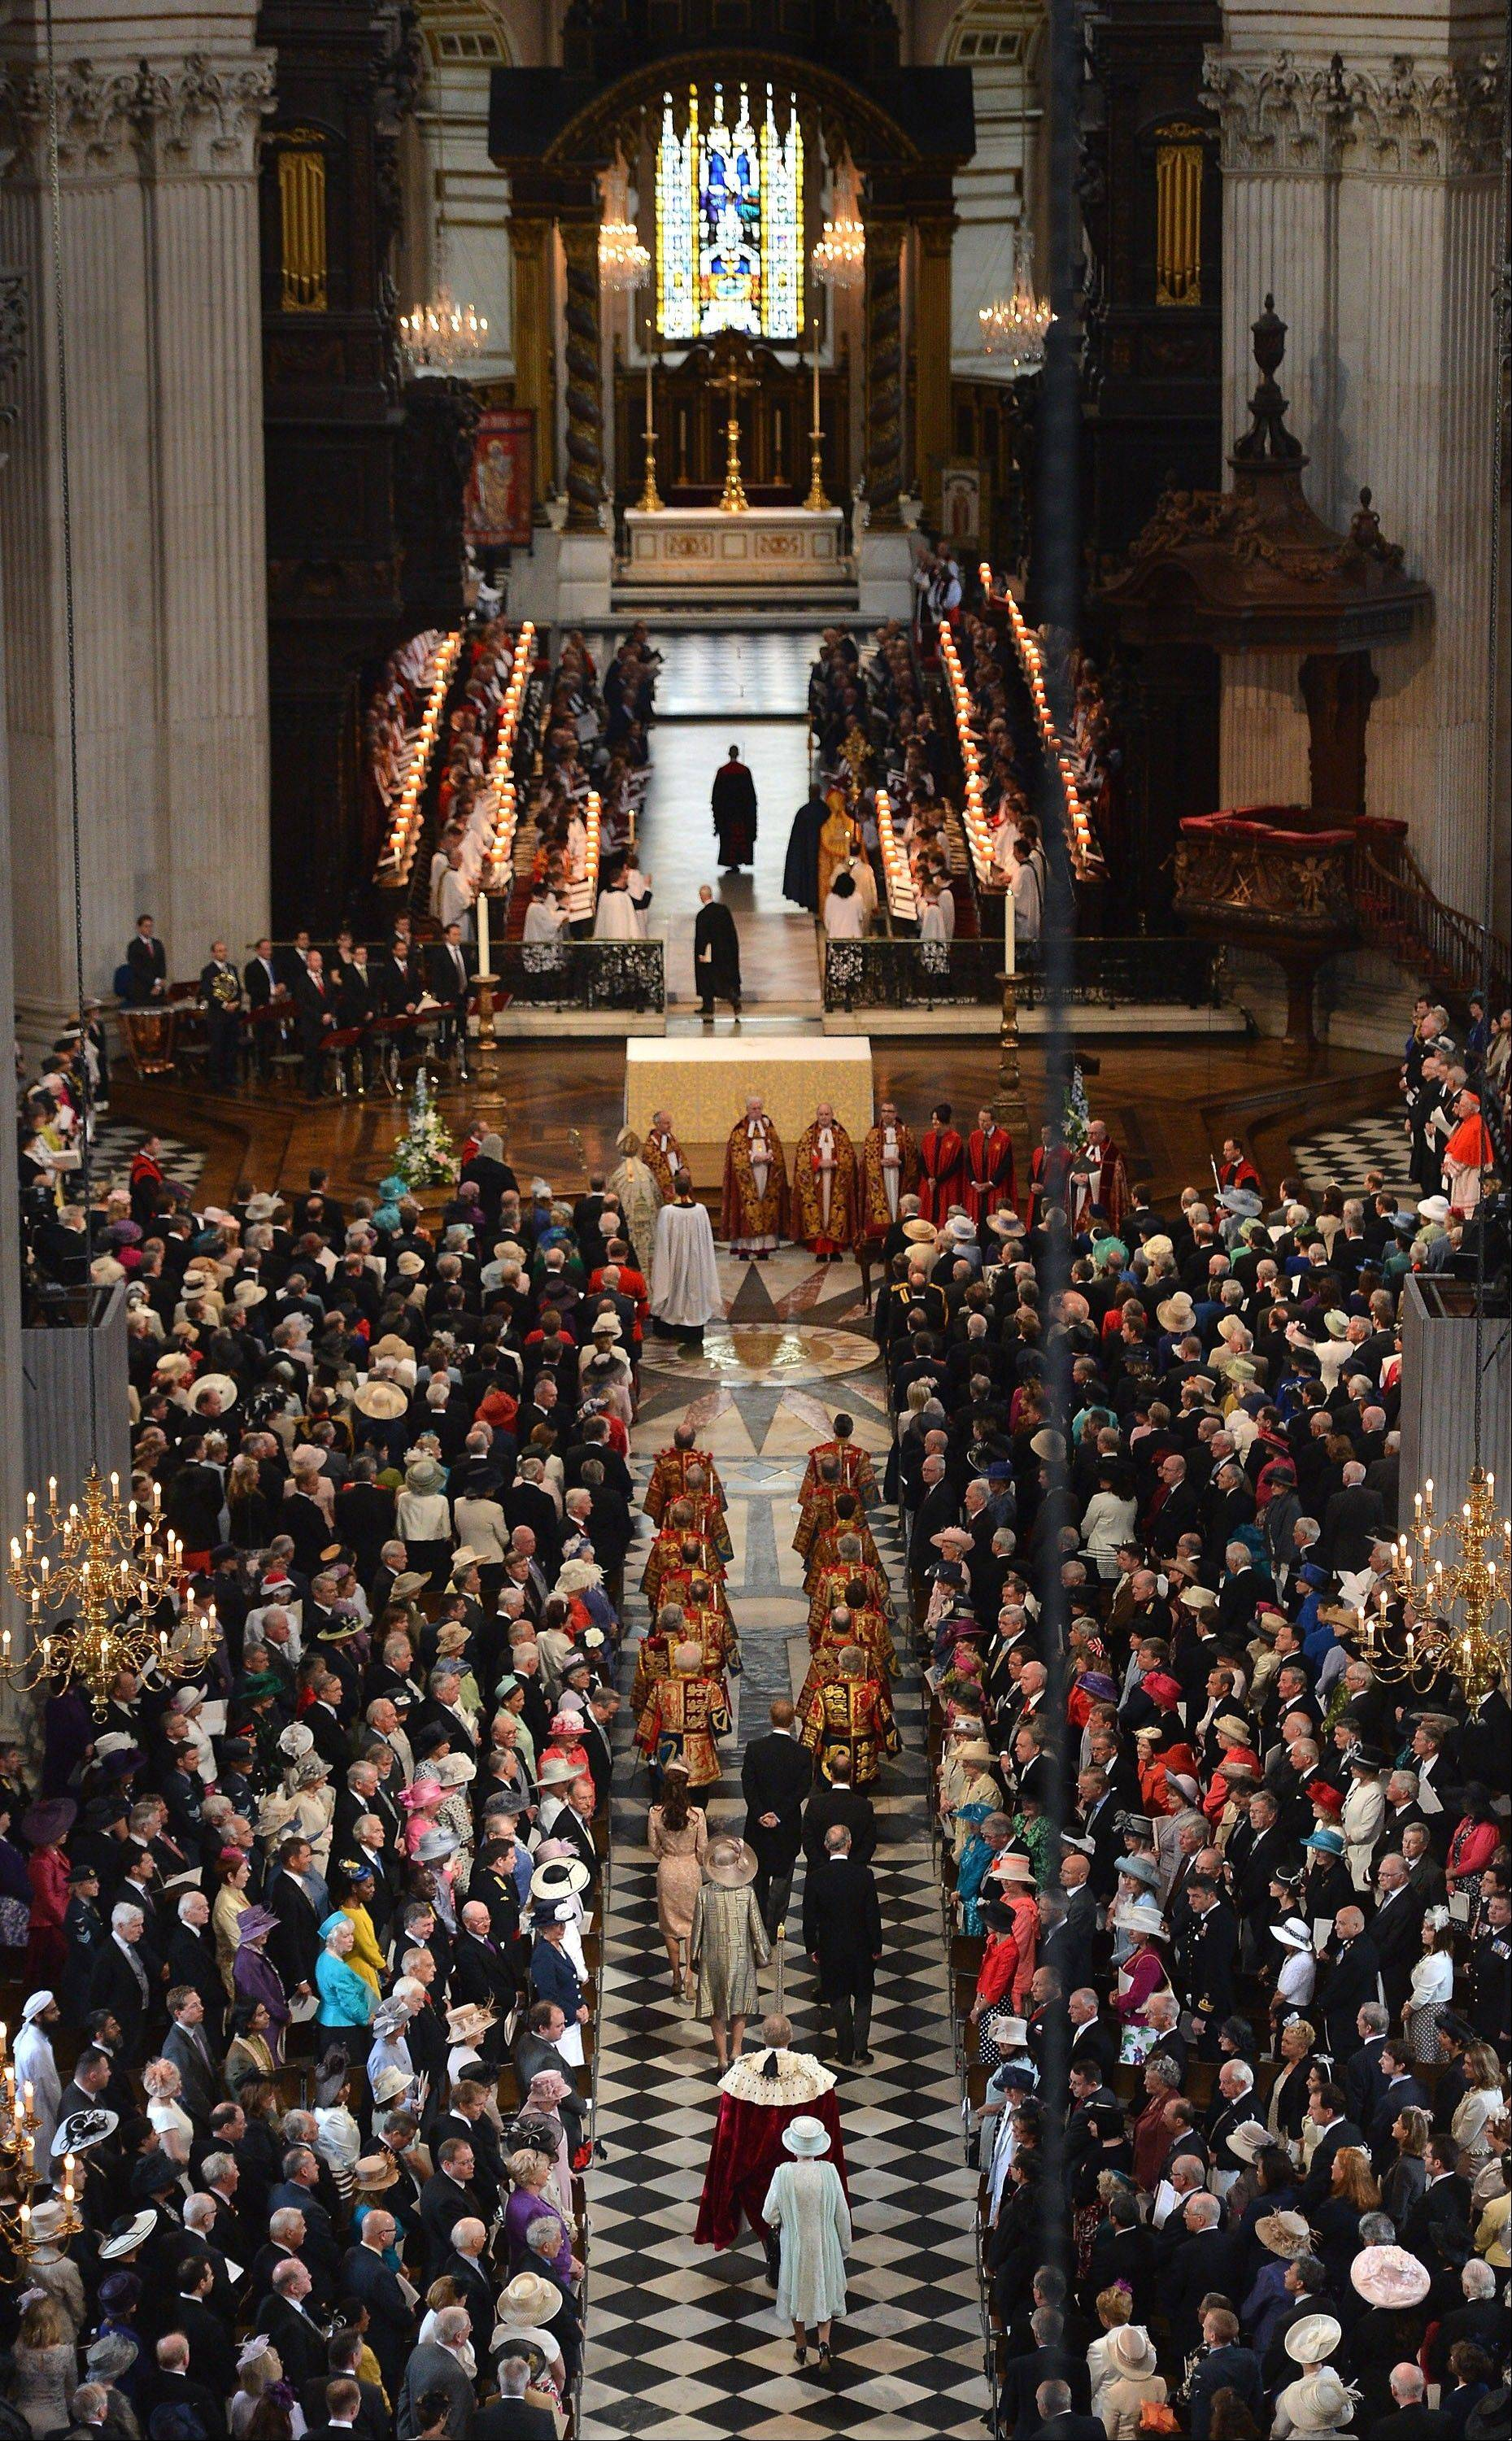 "Britain's Queen Elizabeth II, foreground centre, arrives inside St Paul's Cathedral for a service of thanksgiving during Diamond Jubilee celebrations on Tuesday June 5, 2012 in London. Crowds cheering ""God save the queen!"" and pealing church bells greeted Queen Elizabeth II on Tuesday as she arrived for a service at St. Paul's Cathedral on the last of four days of celebrations of her 60 years on the throne."